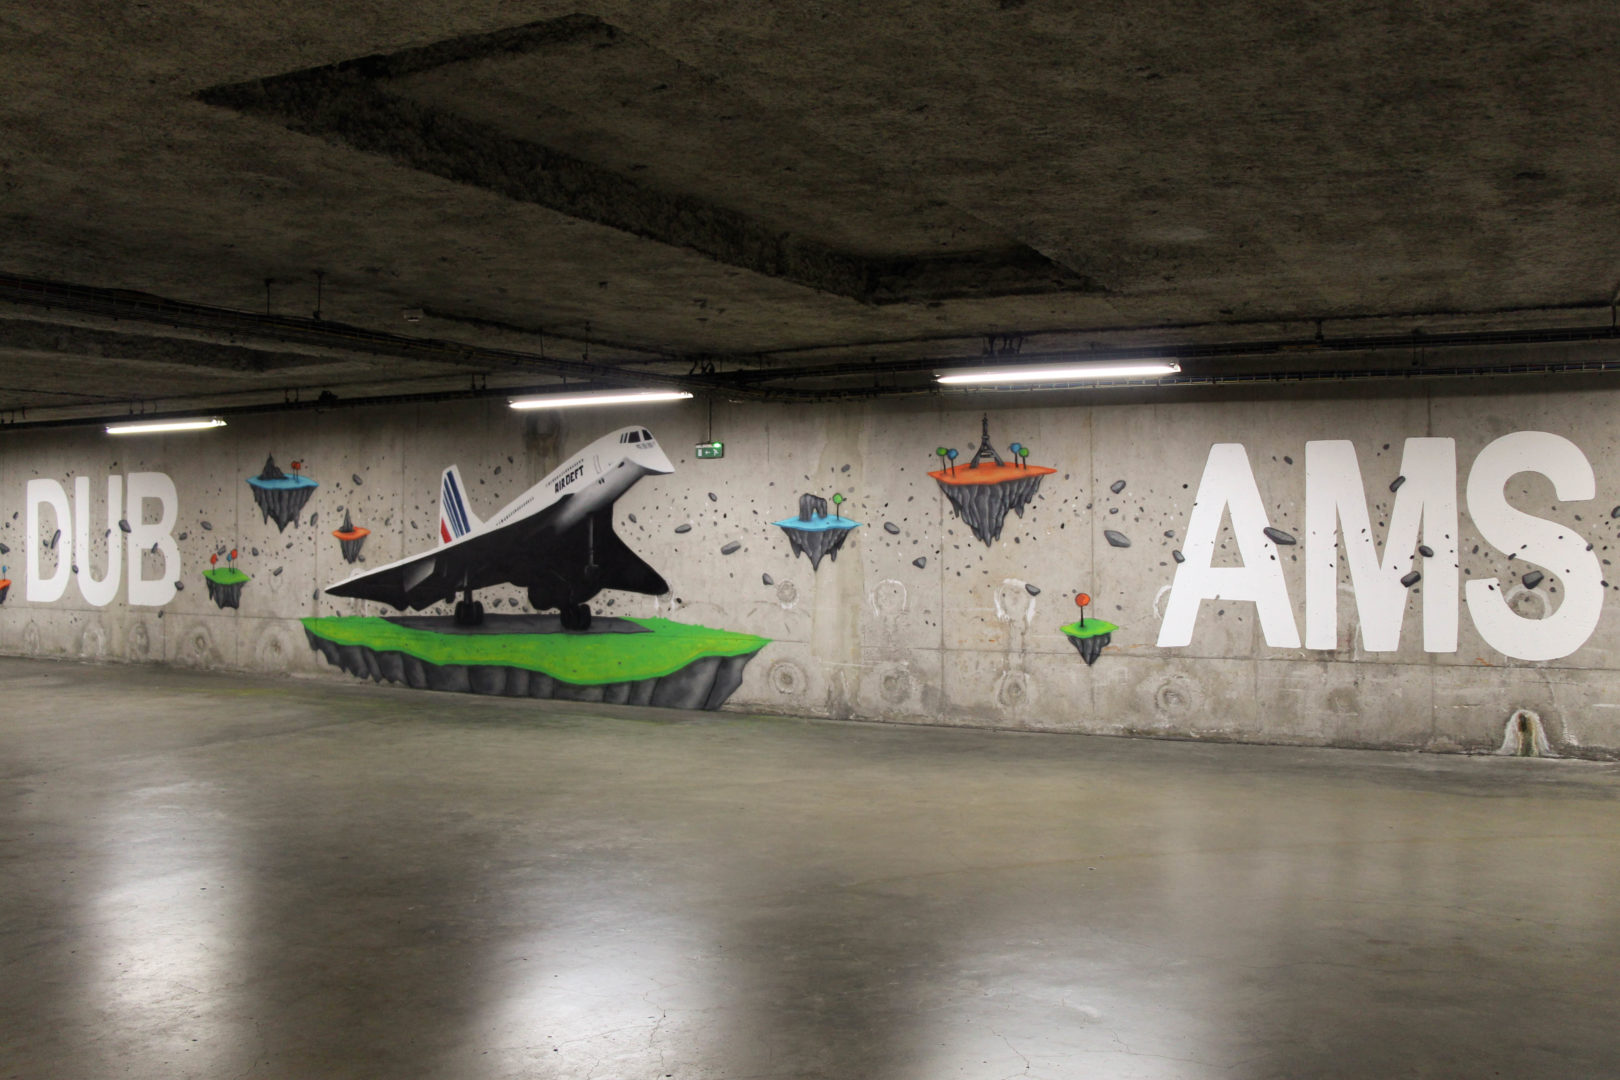 Aéroport-Clermont-Ferrand-Graffiti